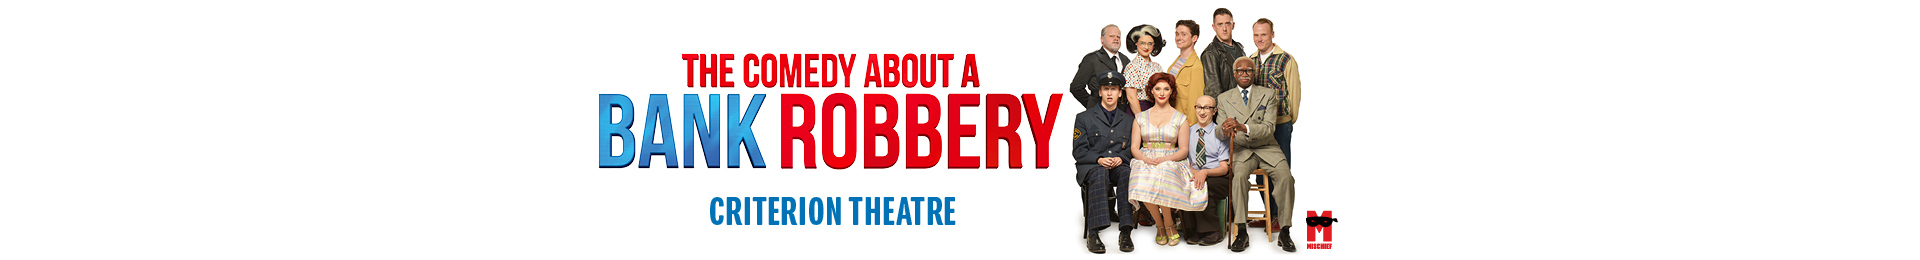 The Comedy About a Bank Robbery banner image